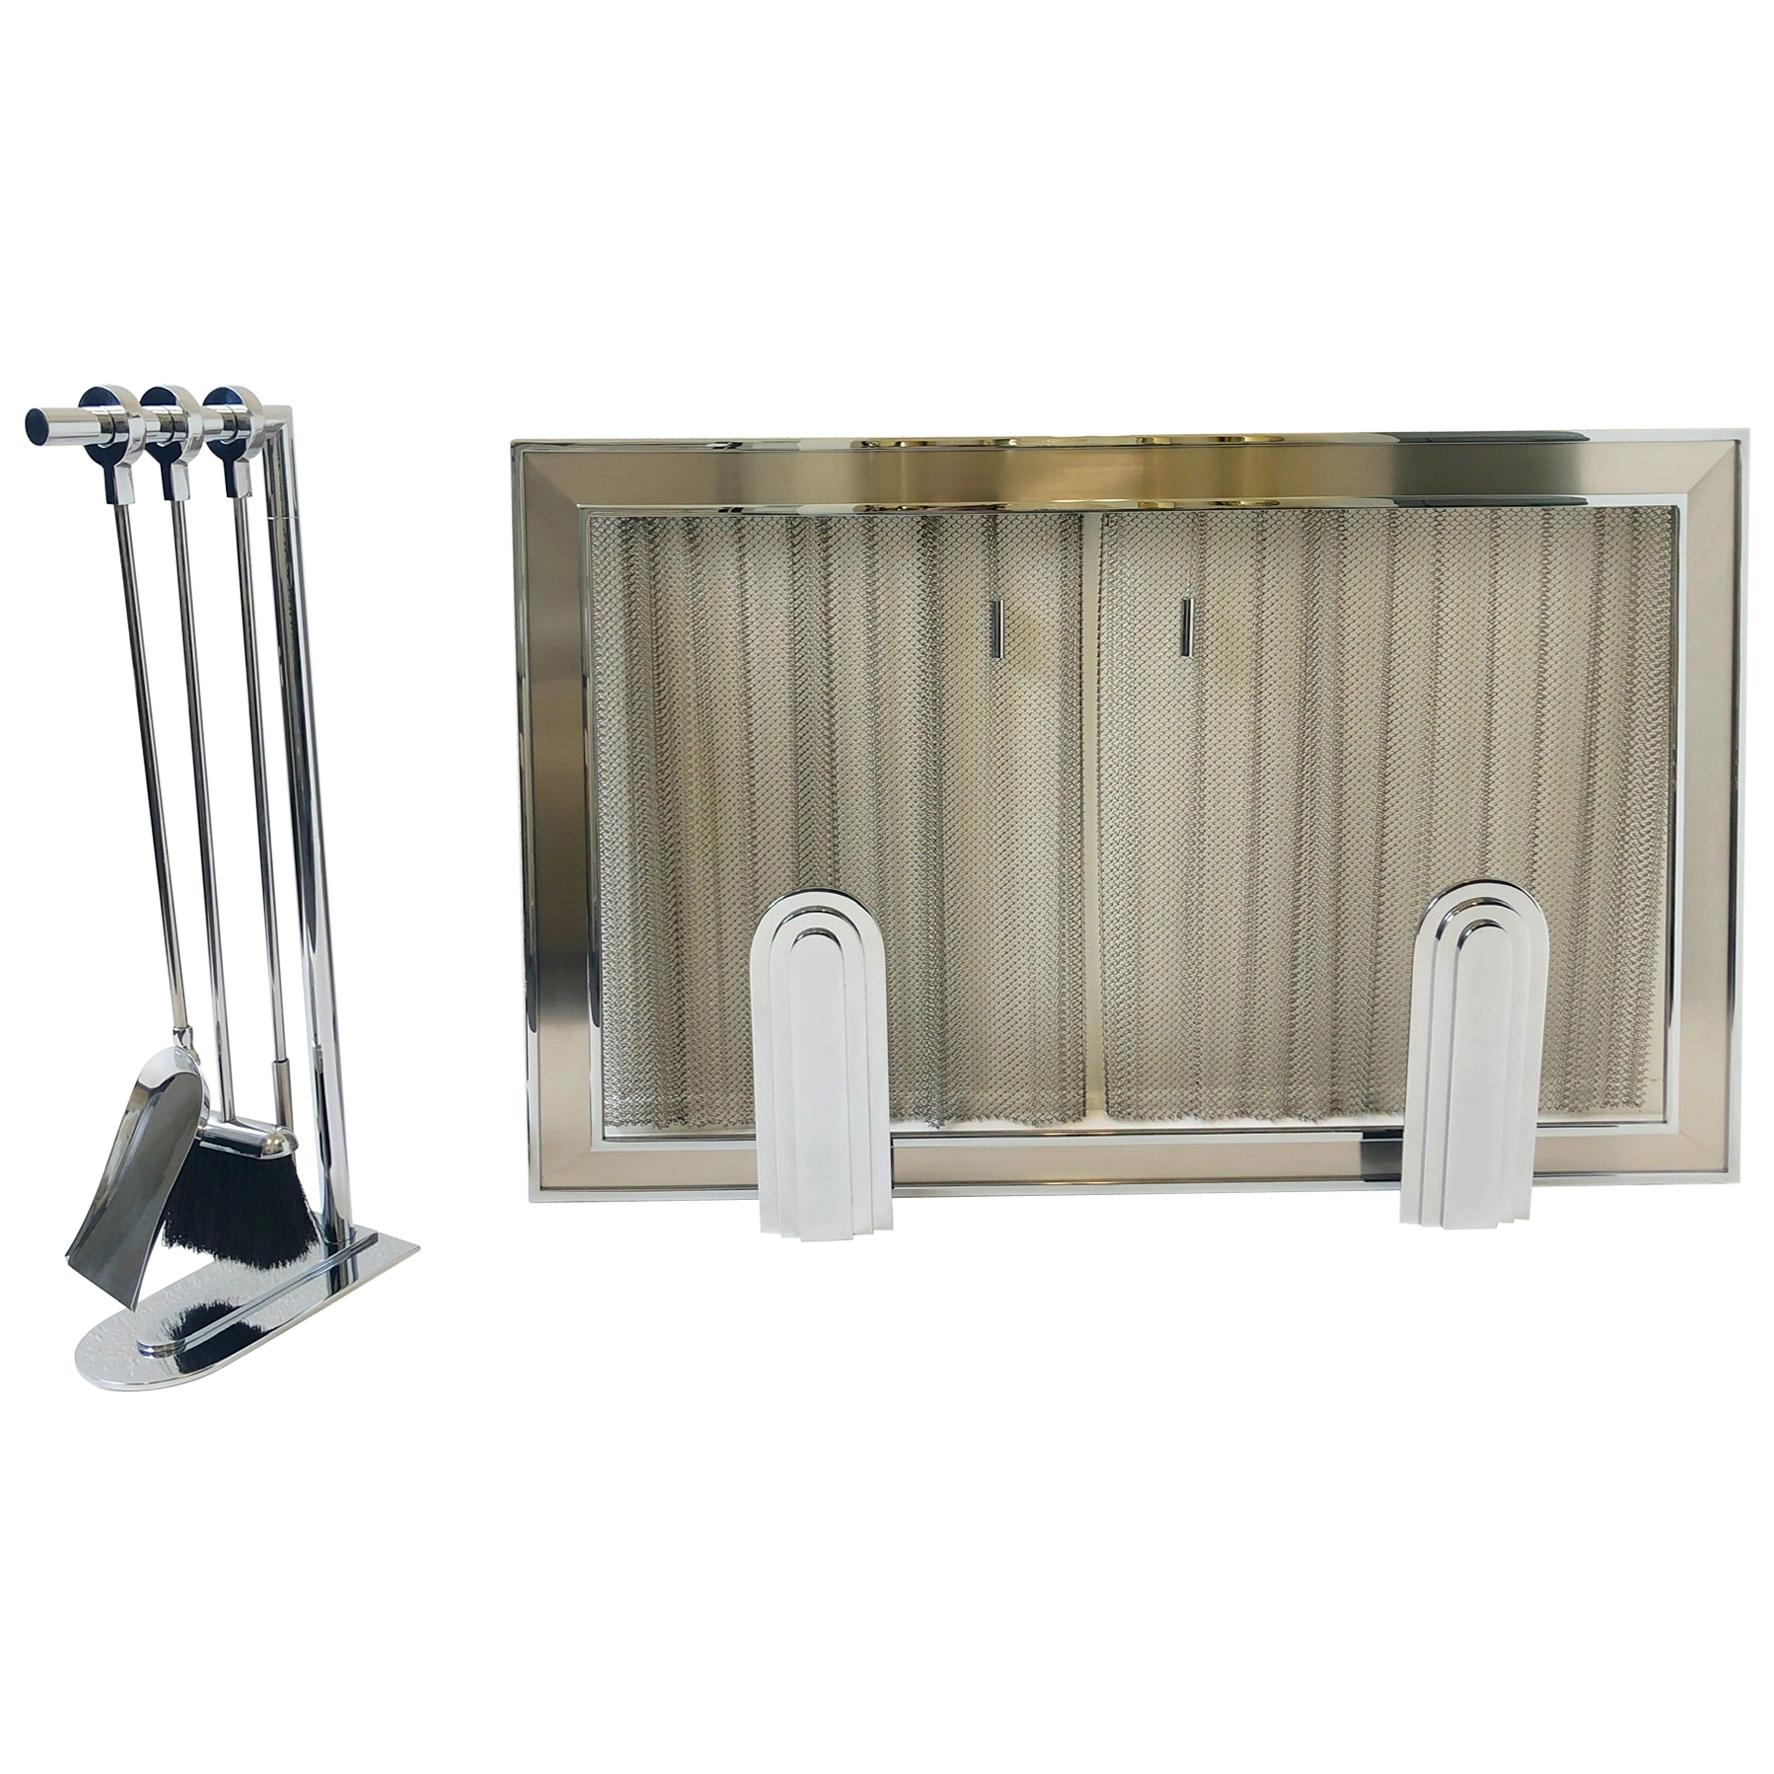 Chrome Fireplace Tool, Andirons and Fire-Screen by Maison Charles